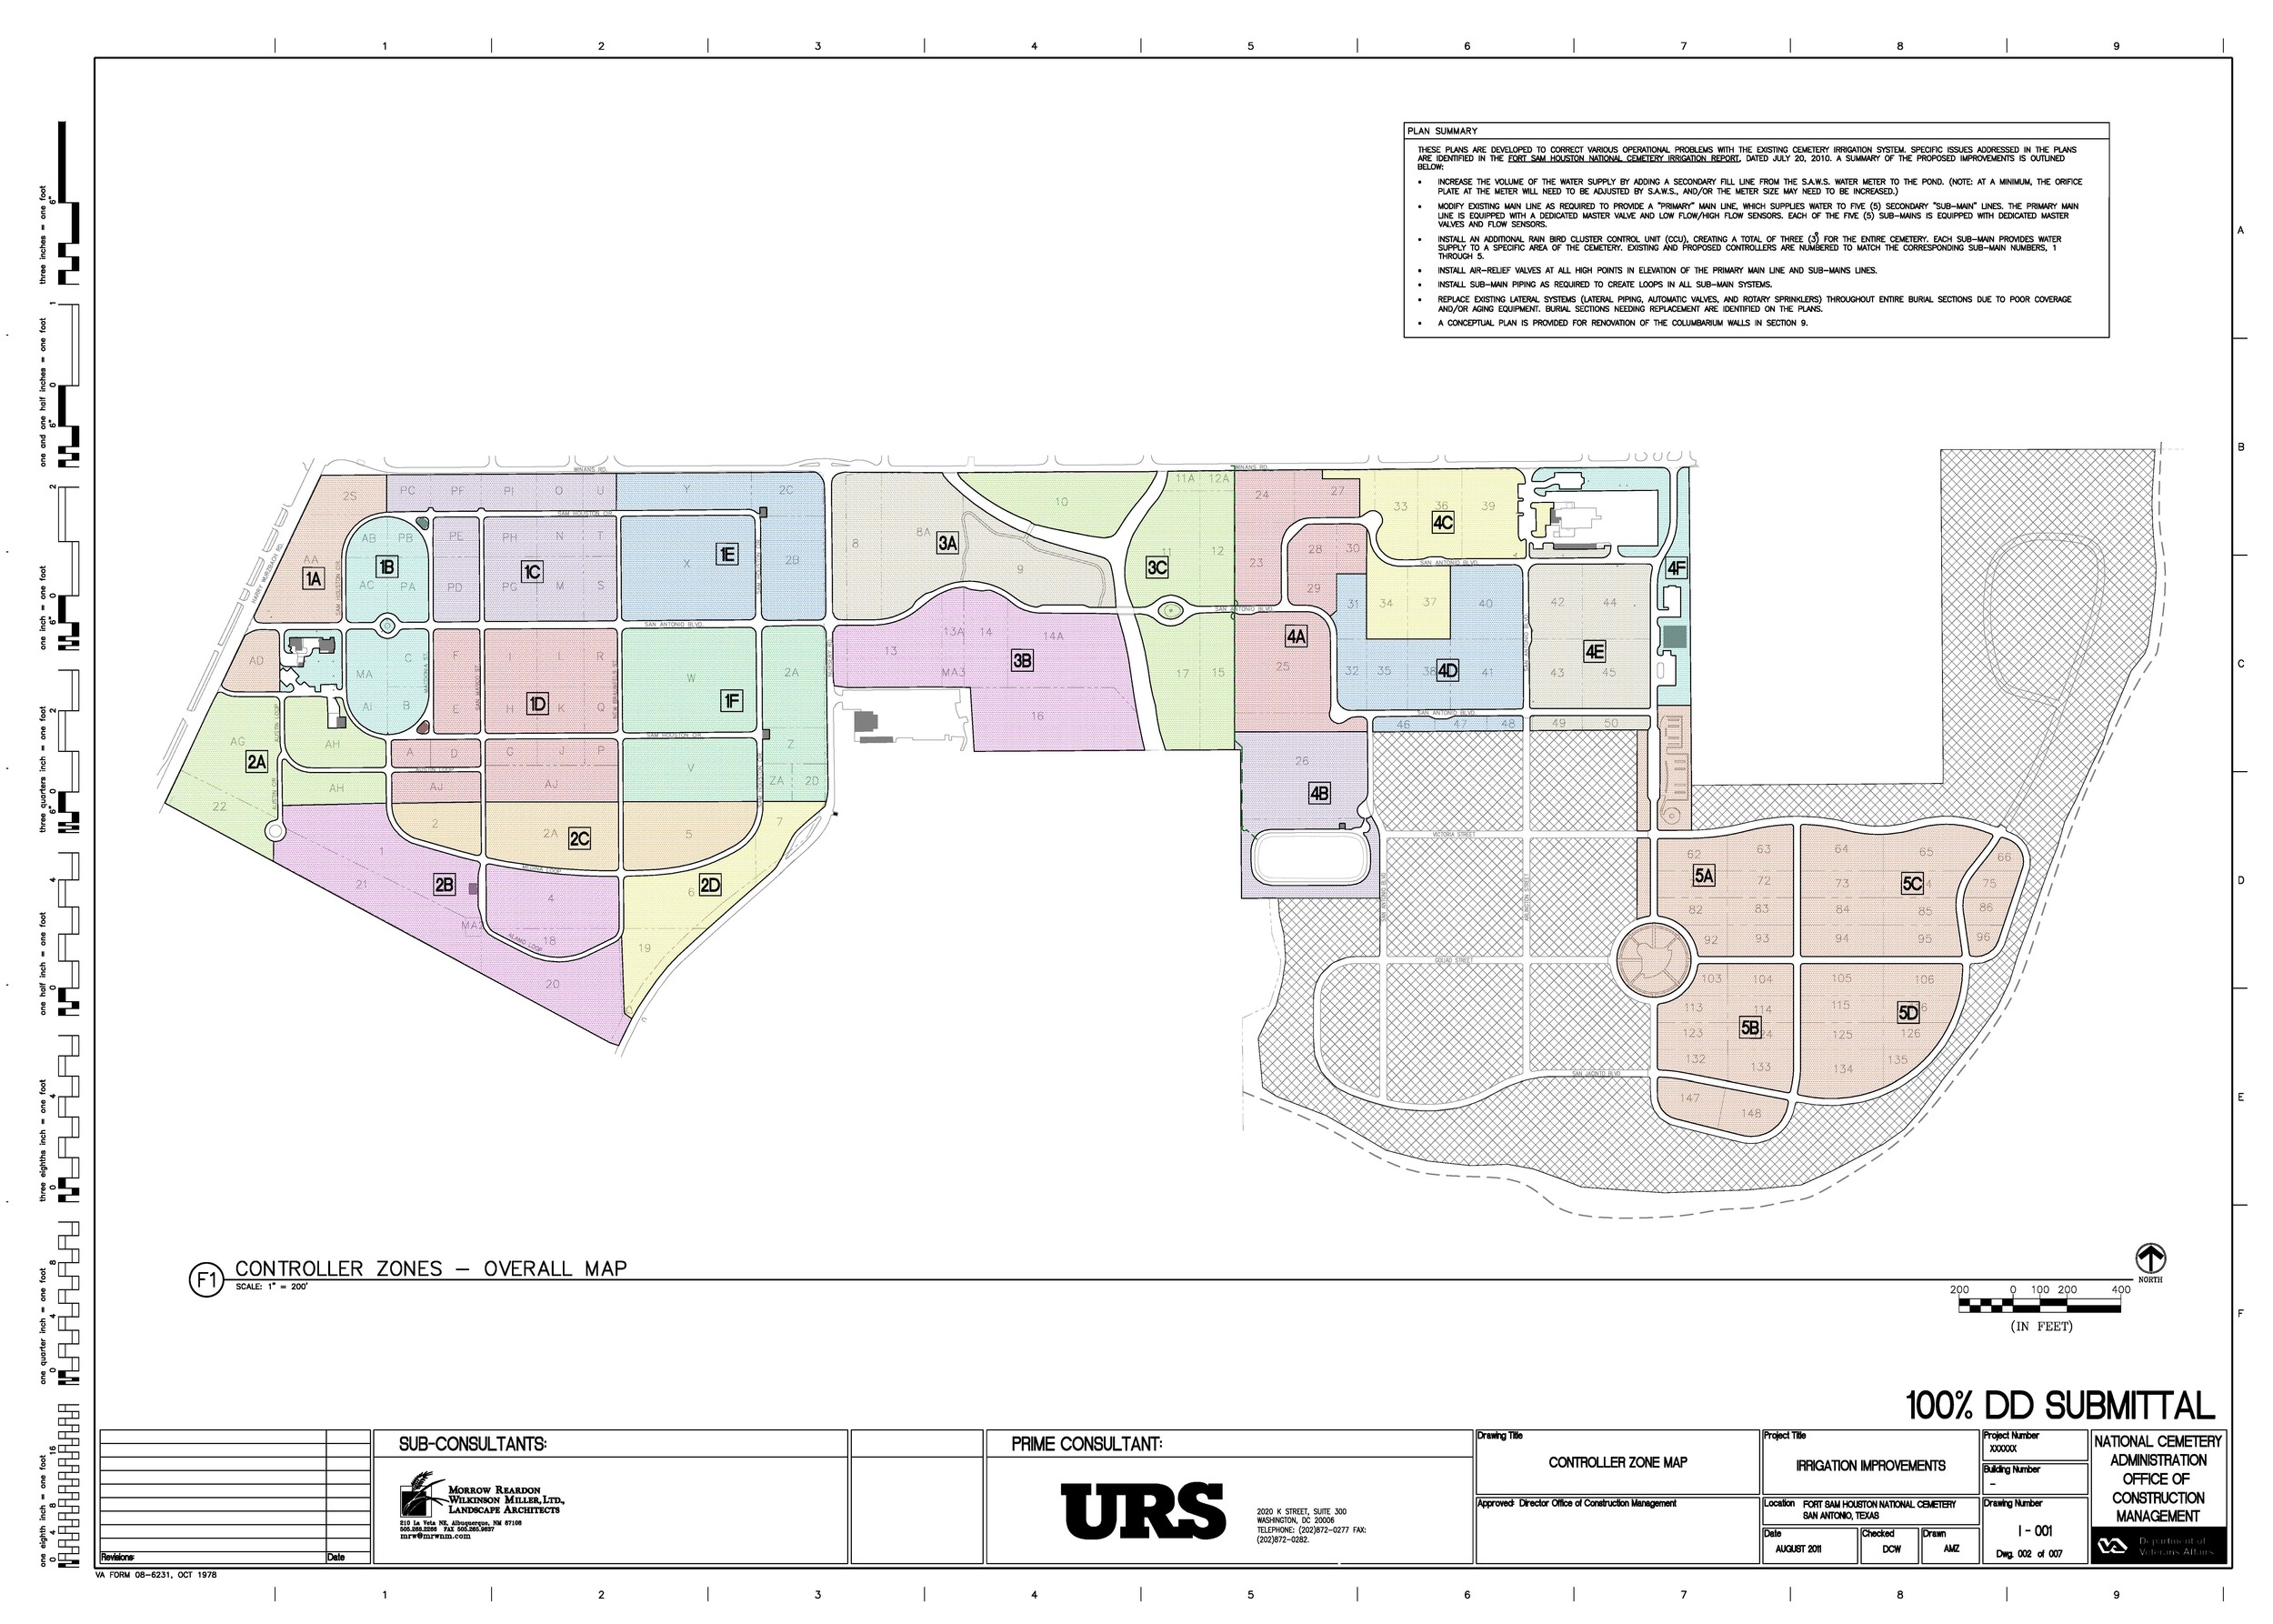 Irrigation controller zoning plan for cemetery